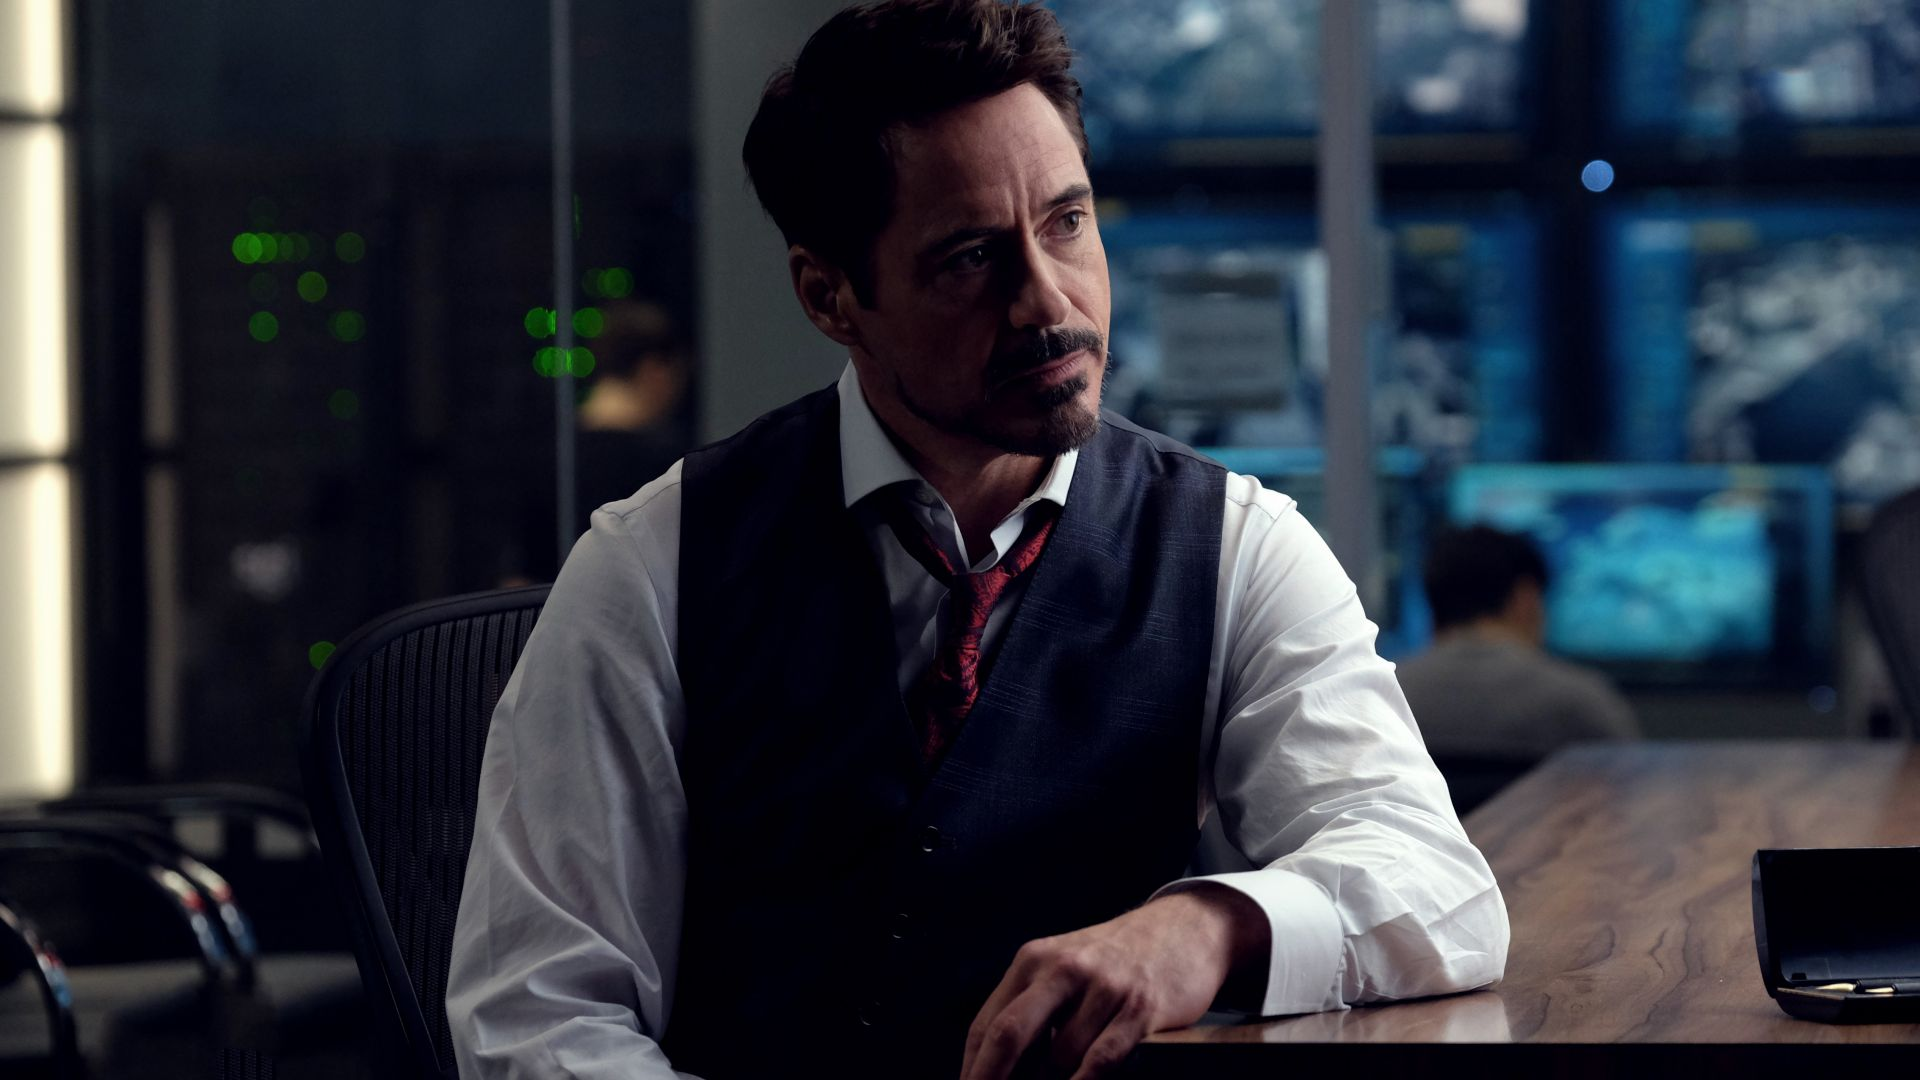 Avengers: Infinity War, Robert Downey Jr., Iron Man, Tony Stark, 4k (horizontal)